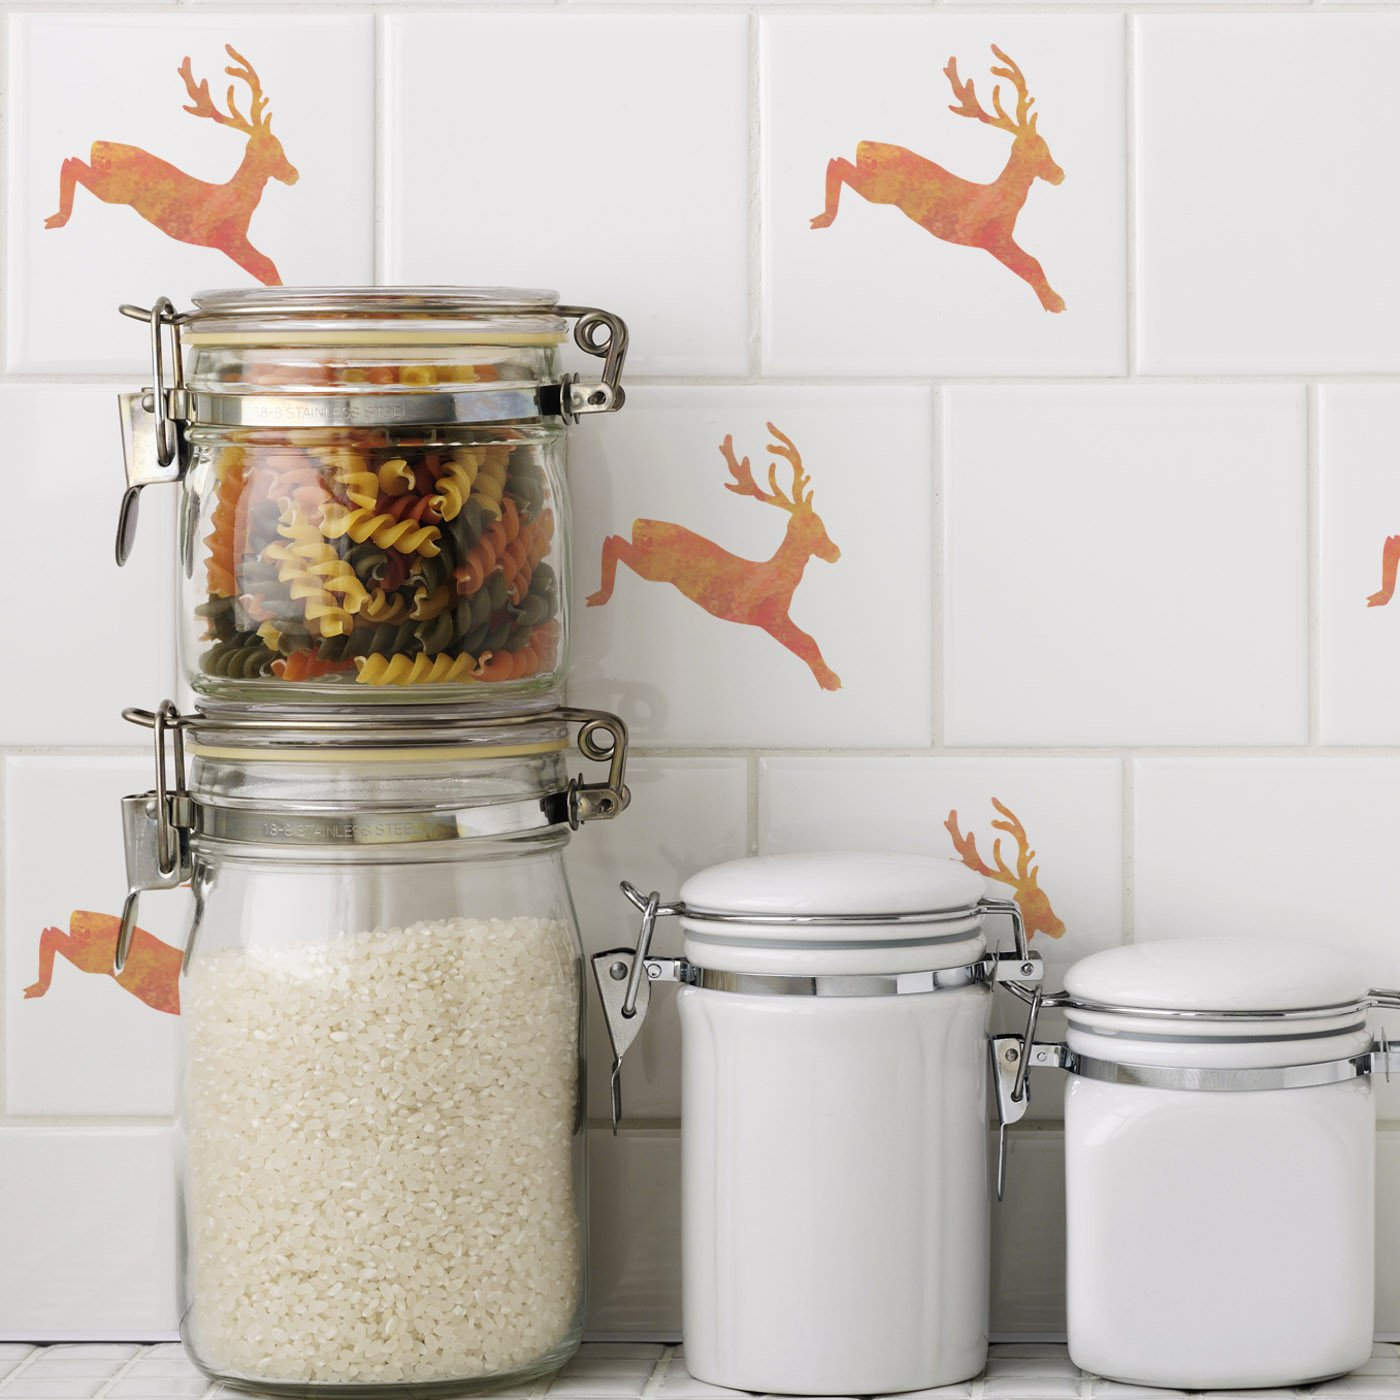 CraftStar Leaping Stag Stencil on tiles